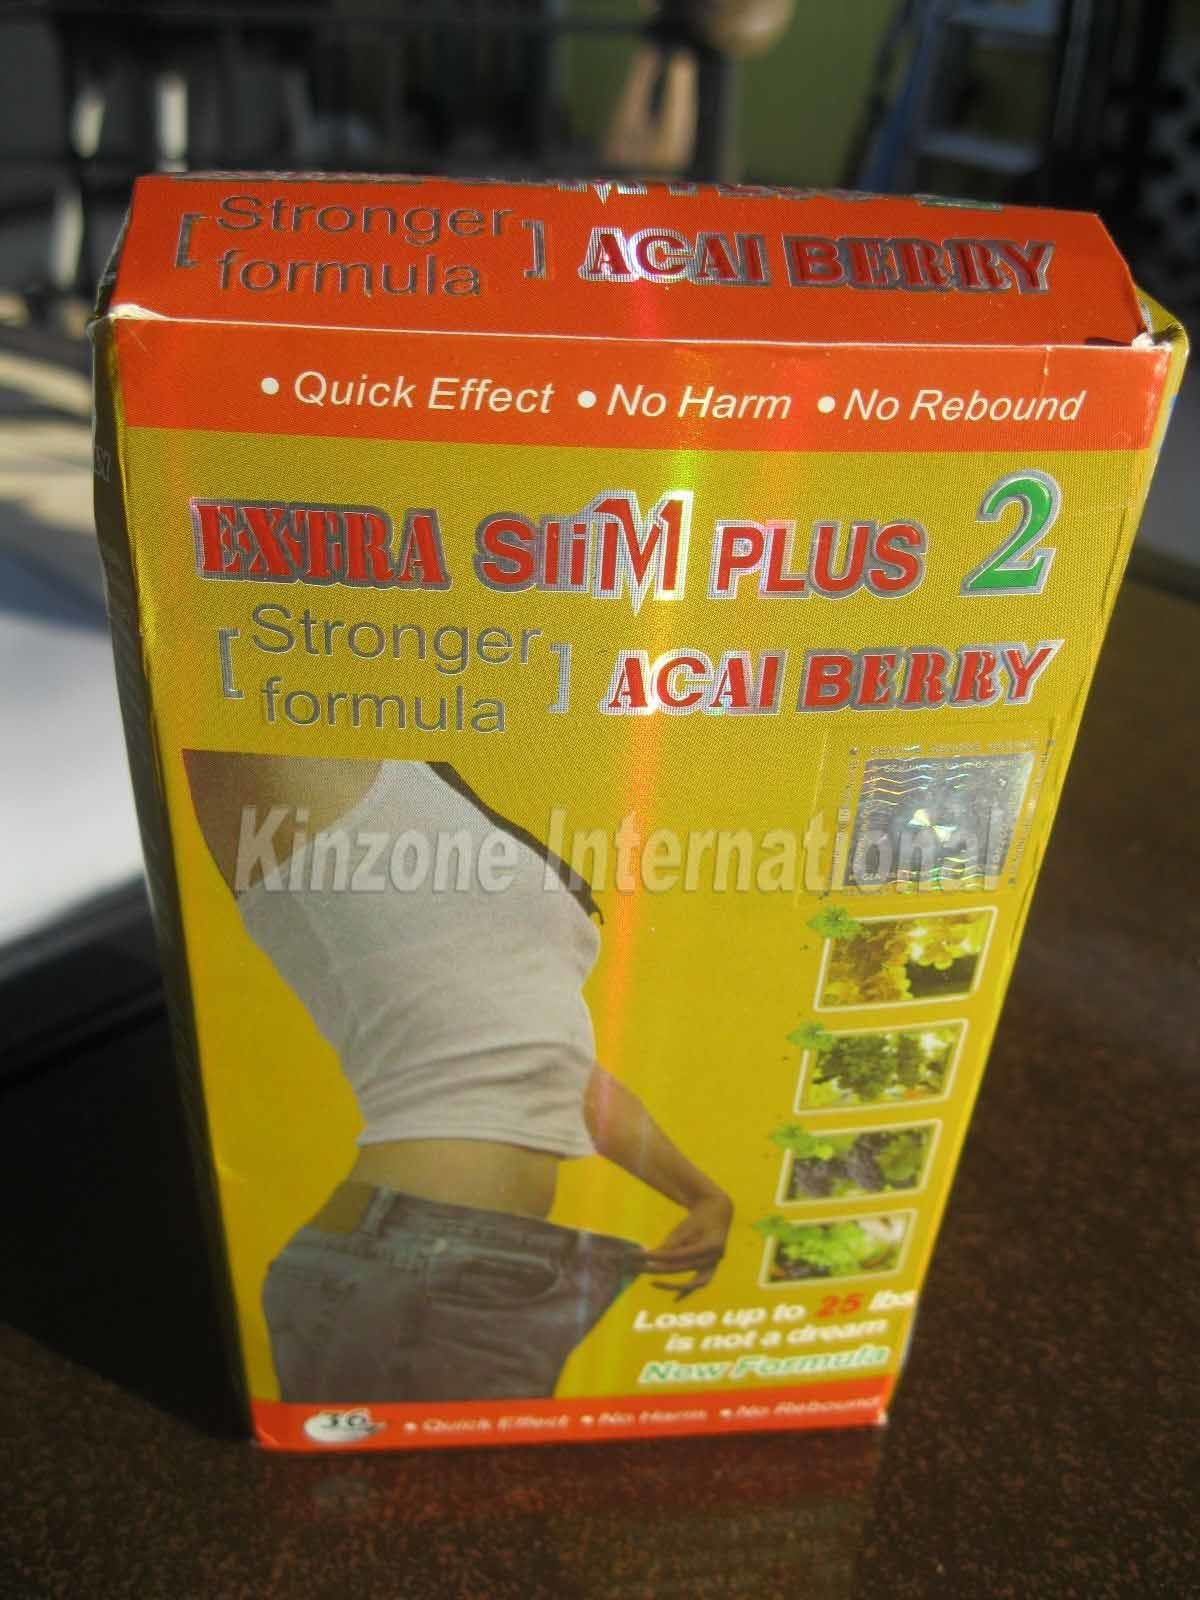 Extra Slim Plus 2 Acai Berry Weight Loss Slimming Product ...